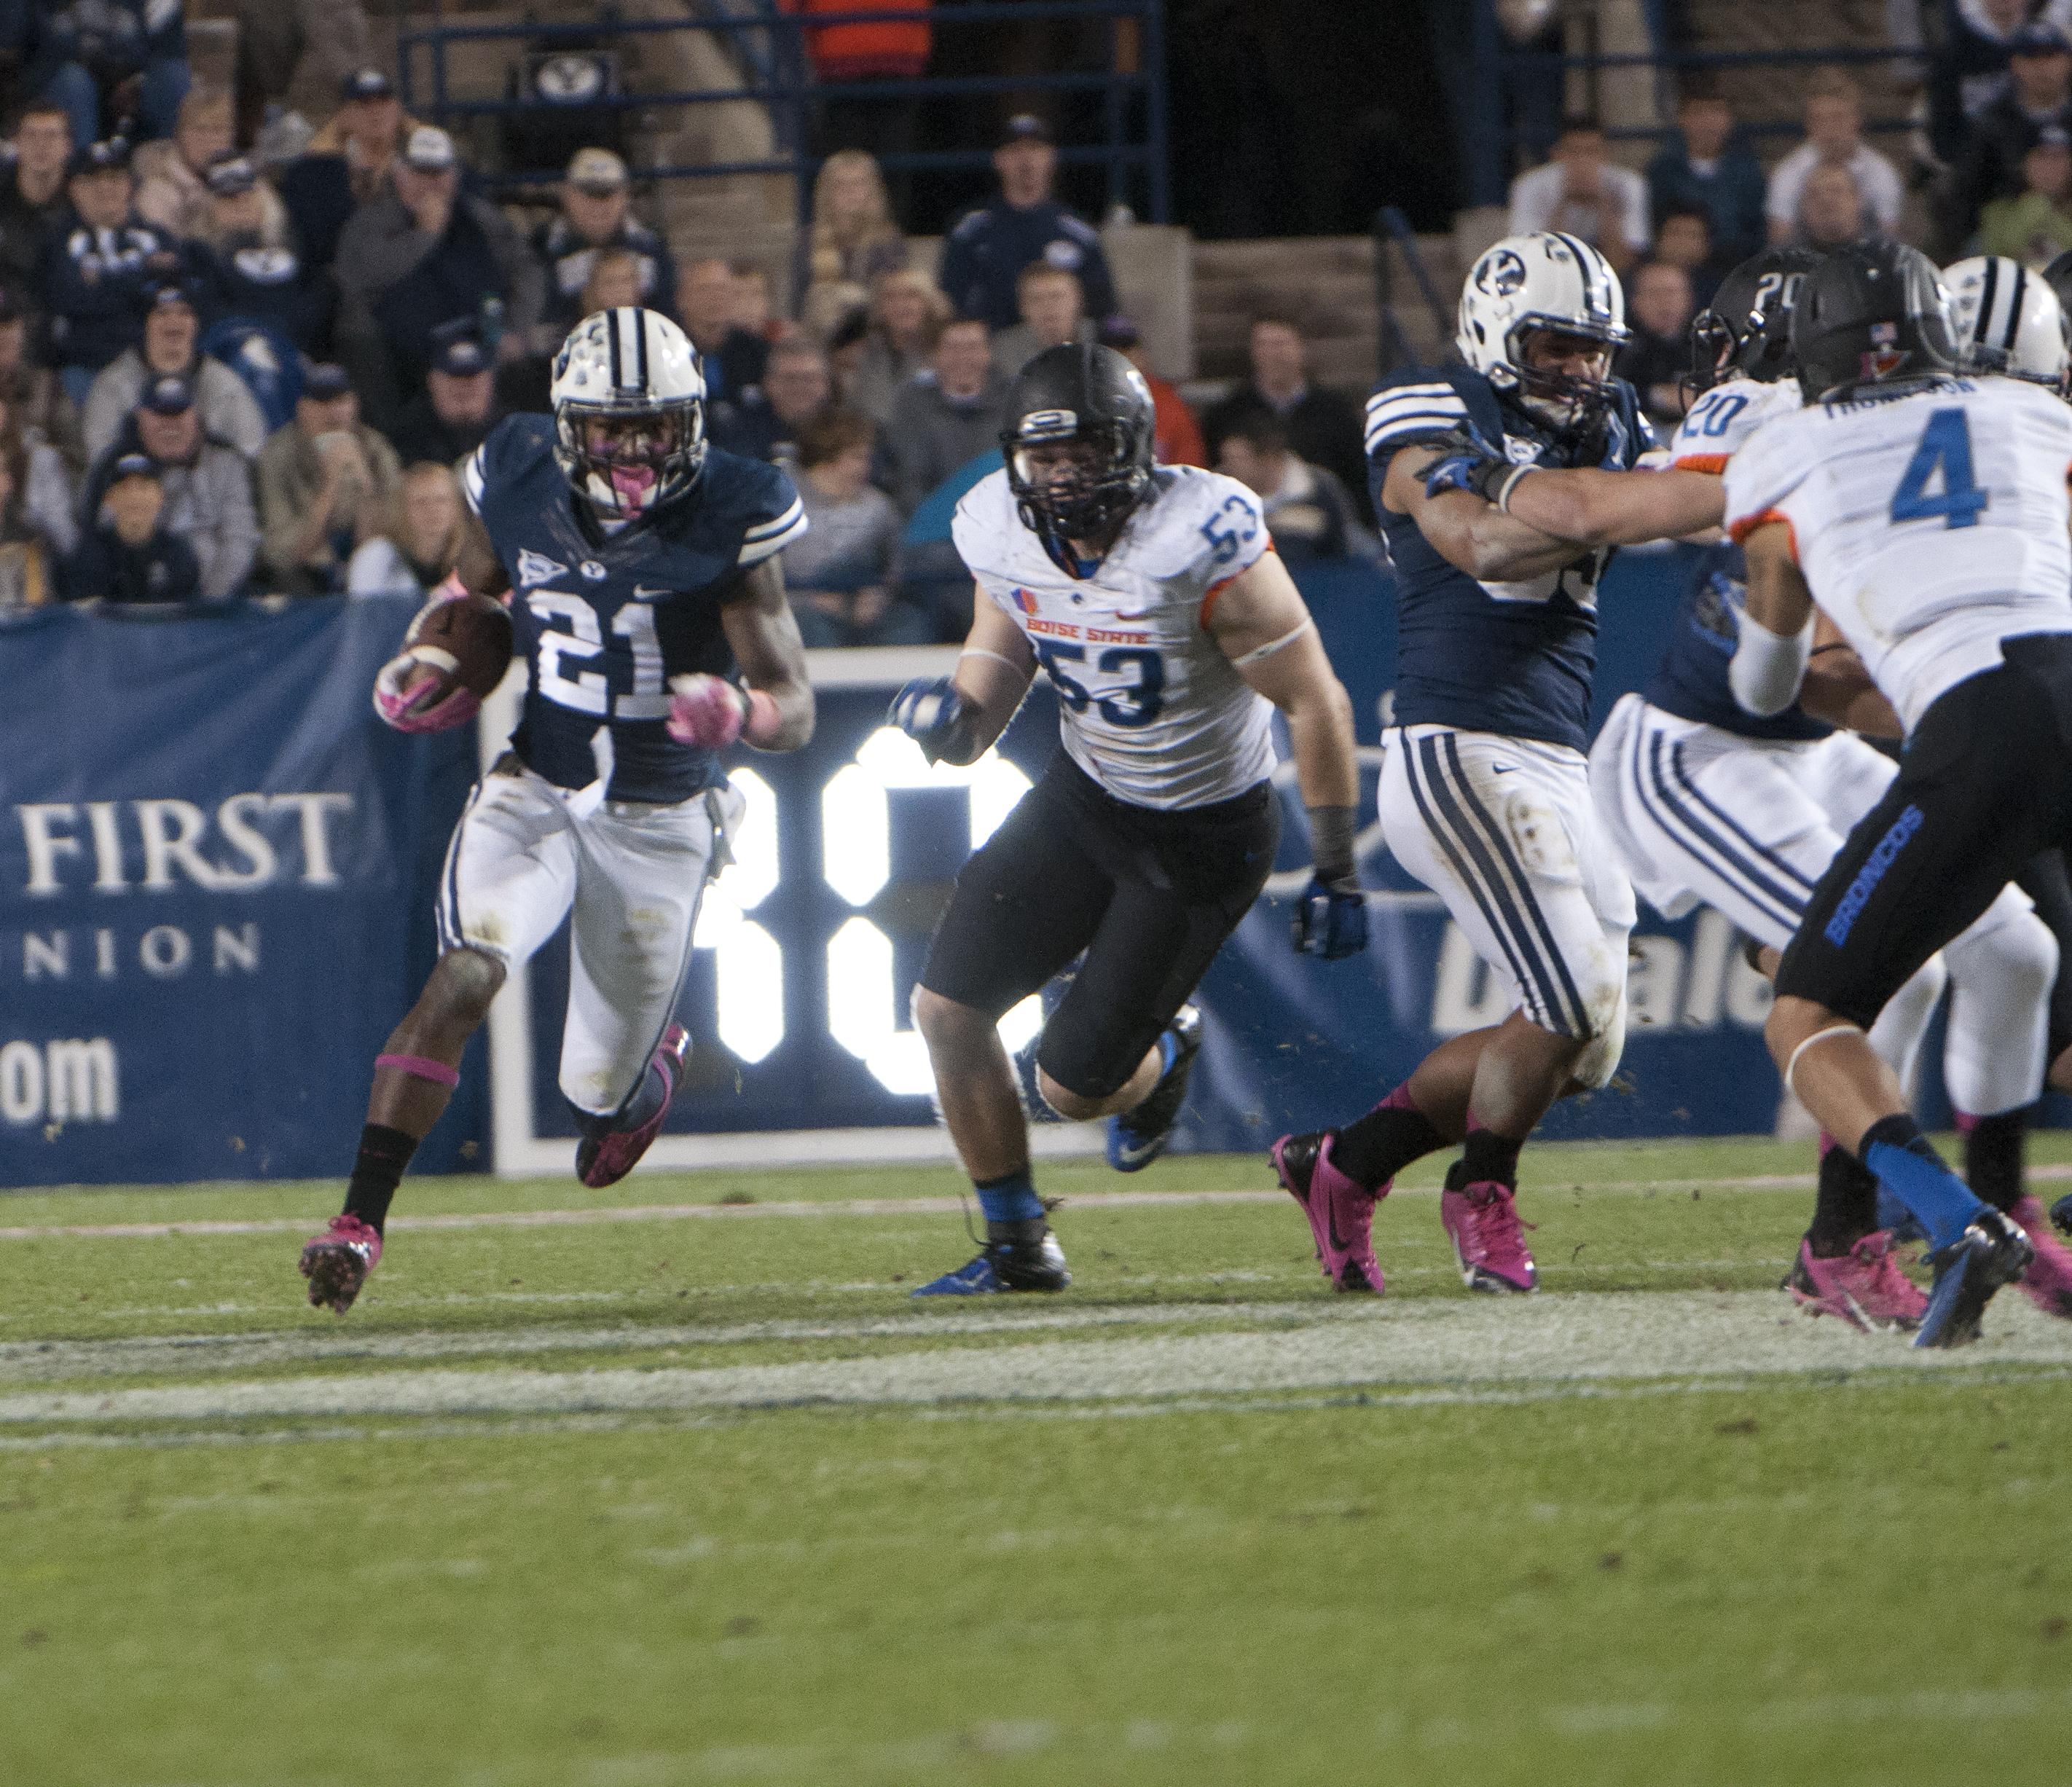 Jamaal Williams outruns his Bronco defender in the Boise State vs. BYU game. (Photo by Maddi Dayton)